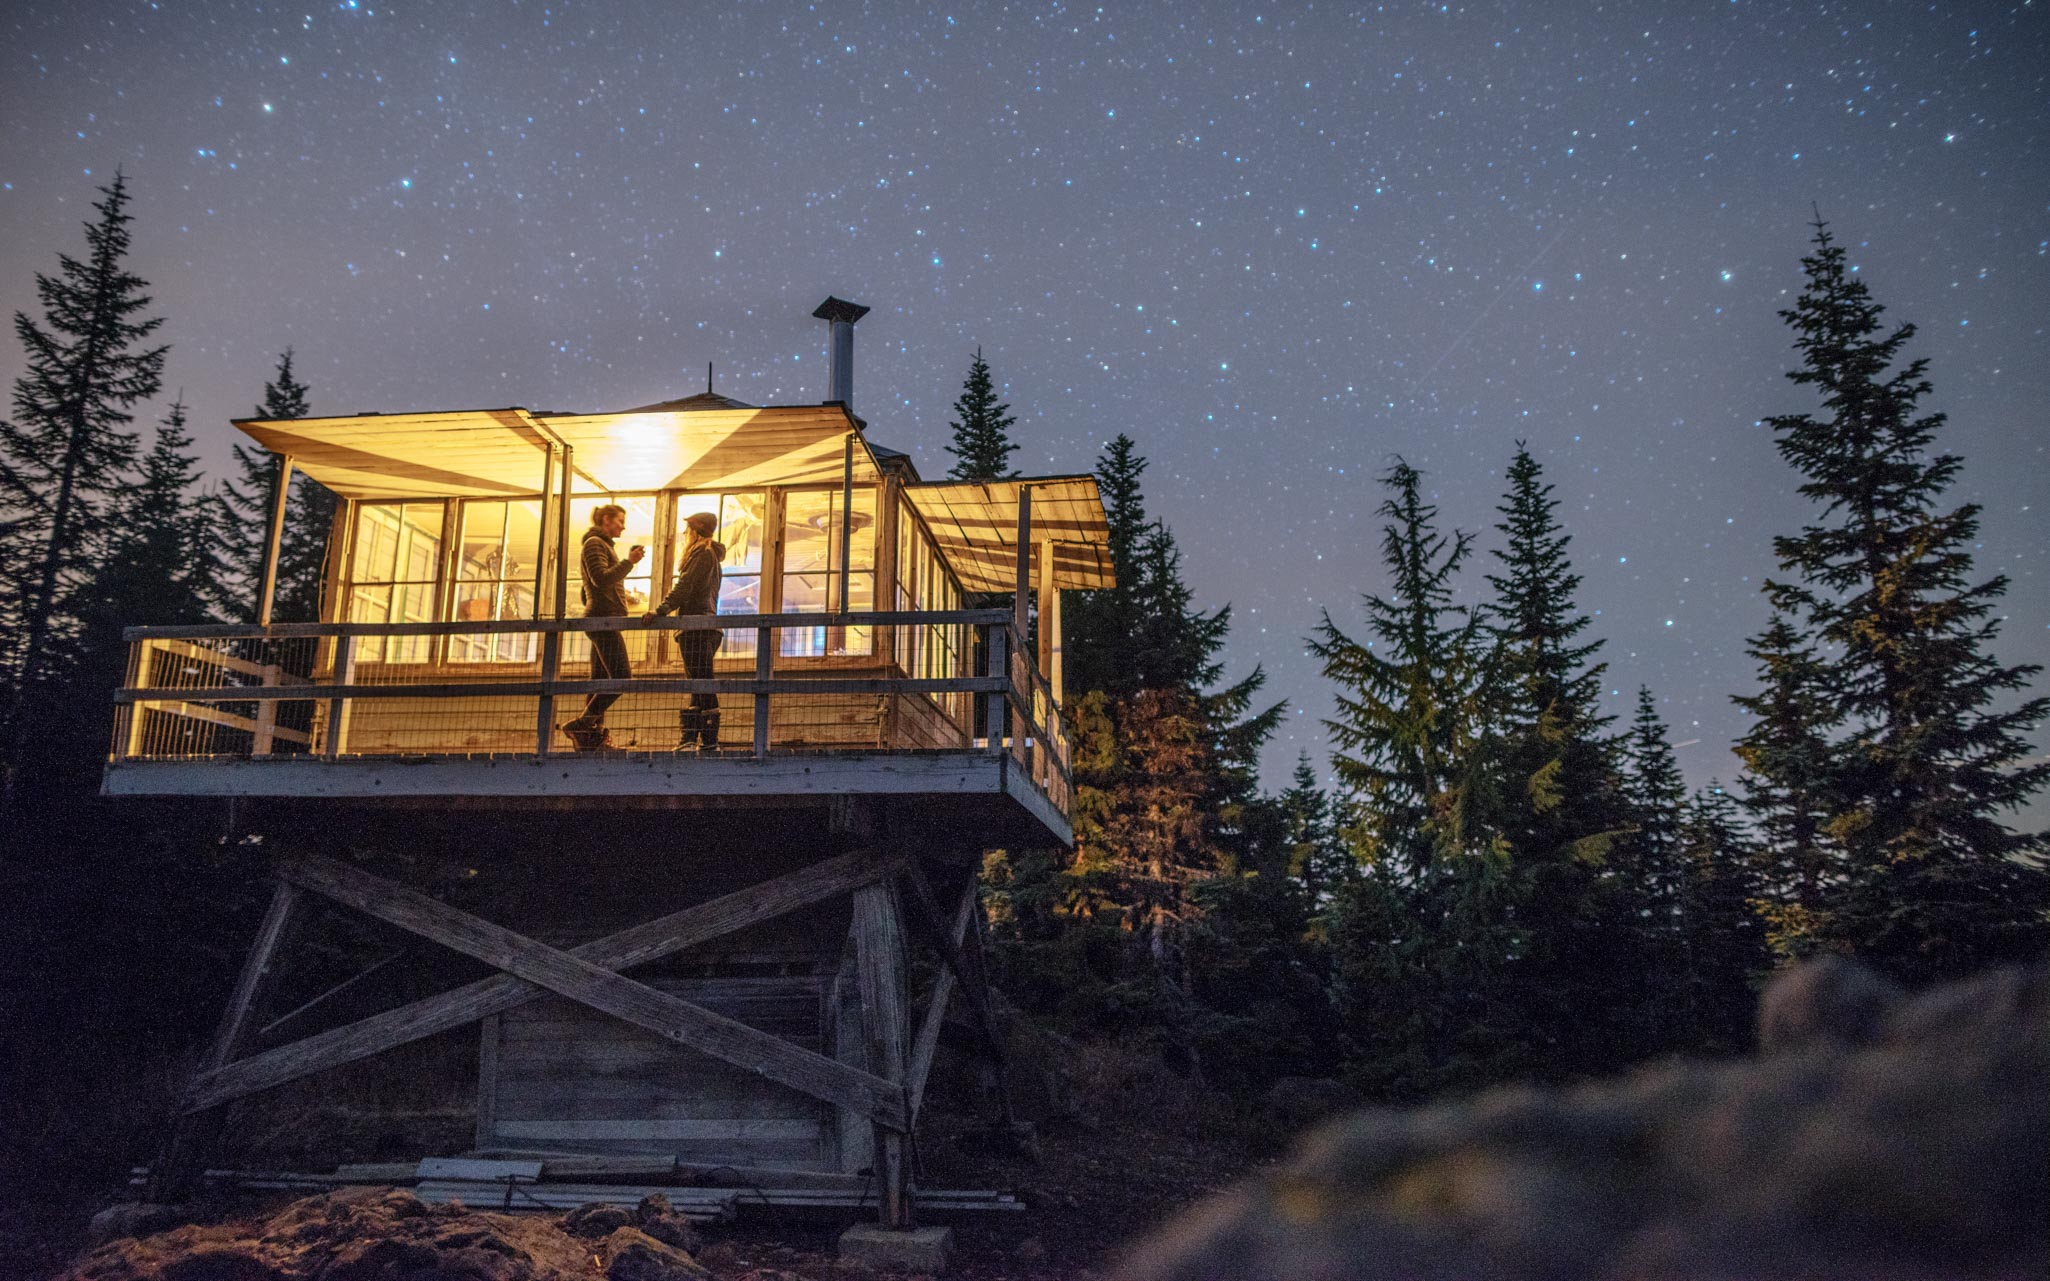 Fire Lookout Tower at night with stars in the sky